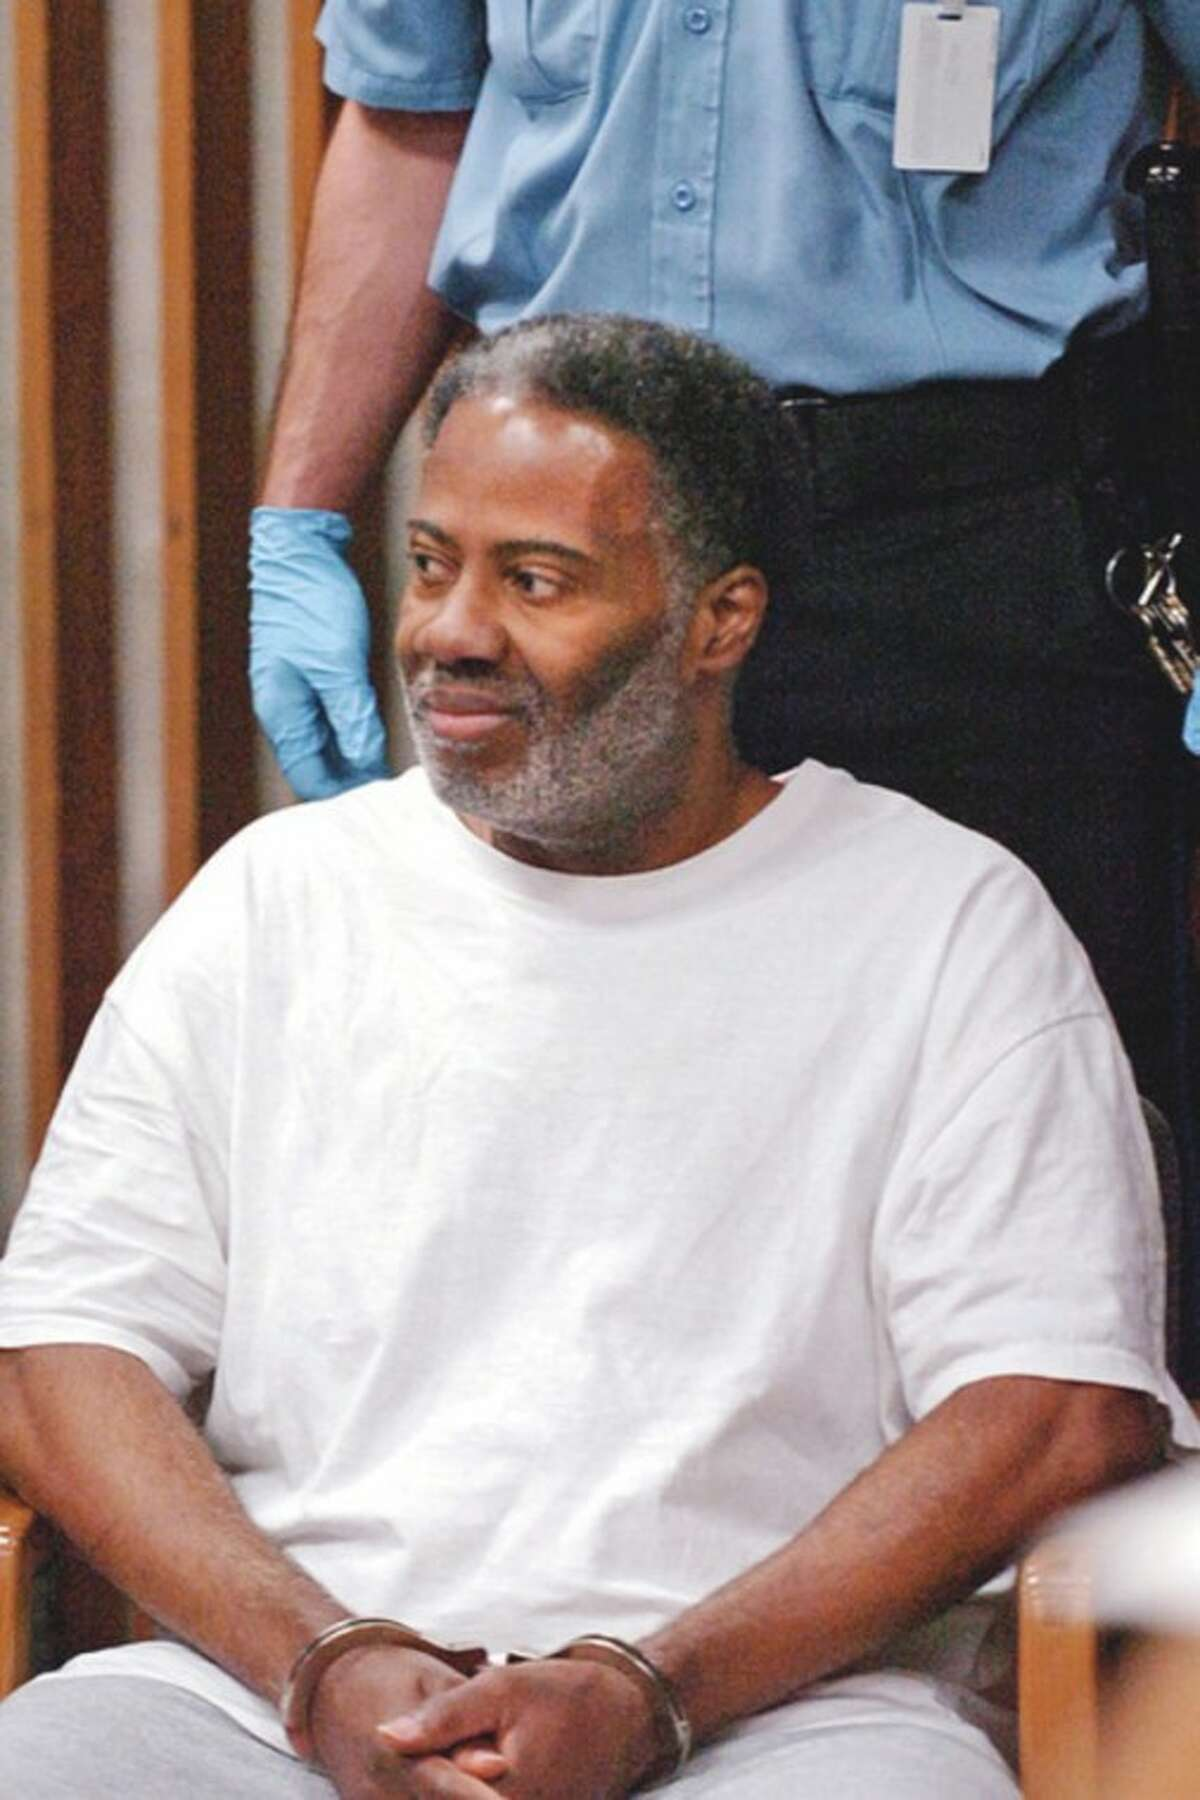 Pernell McBride is held on a one million dollar bond following his arraignment on charges of murder at Norwalk Superior Court Tuesday. Hour photo / Erik Trautmann